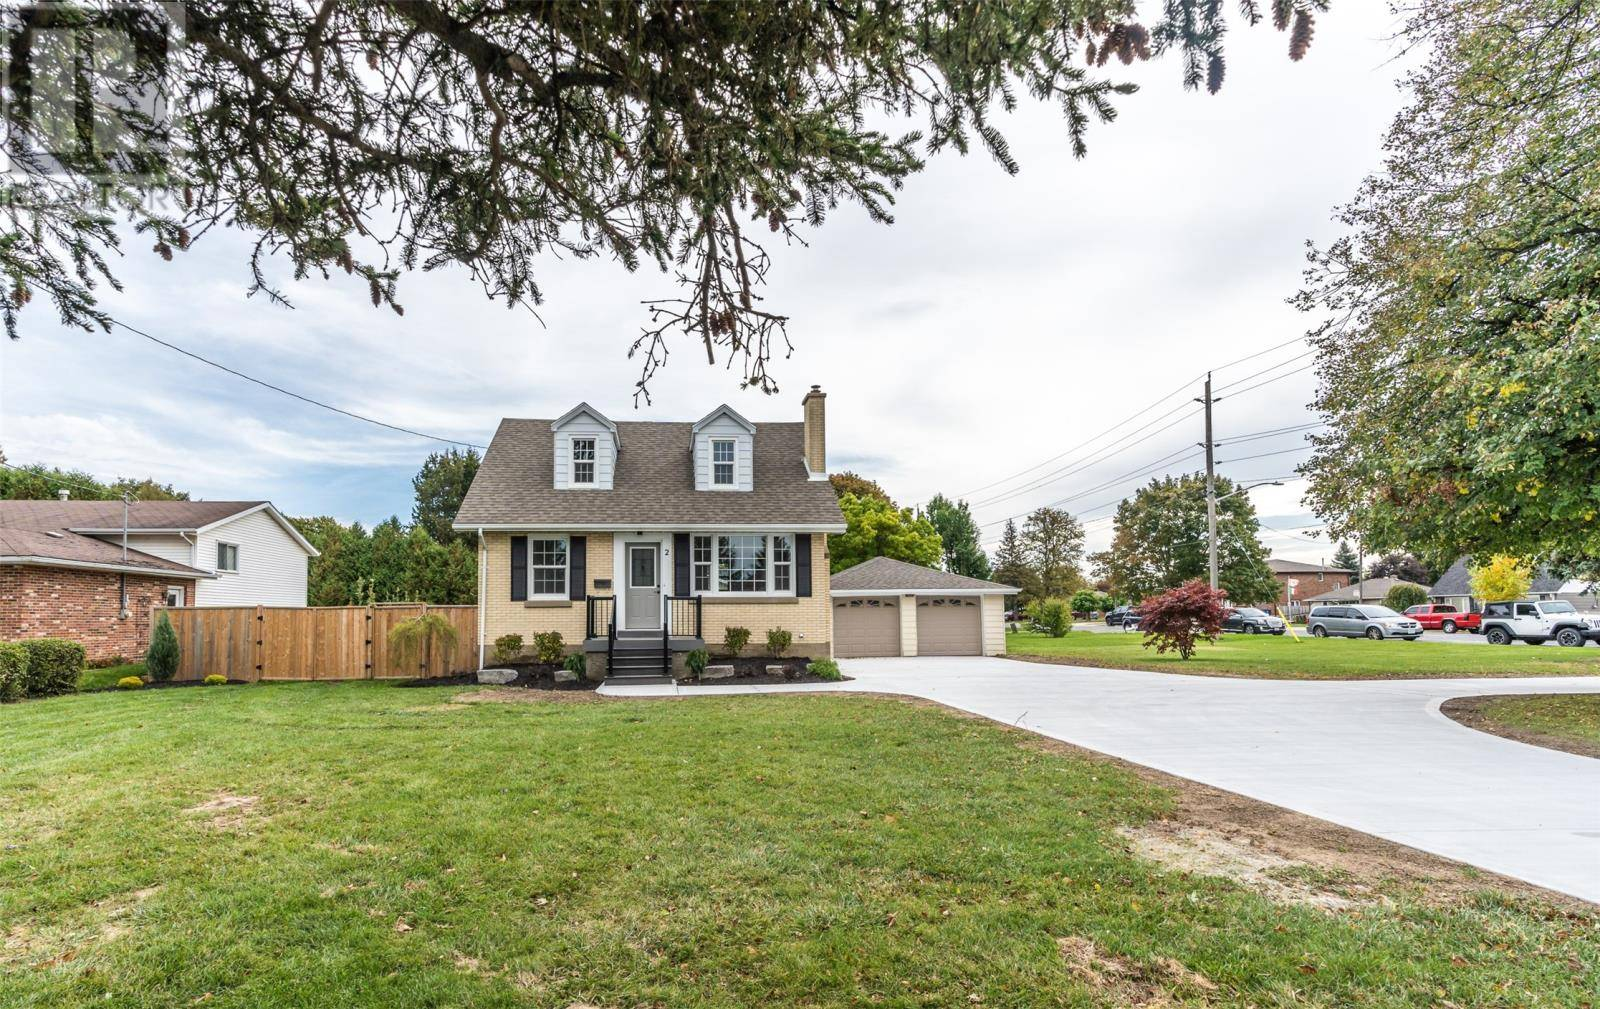 House for sale at 2 Gregory Dr East Chatham Ontario - MLS: 19027190